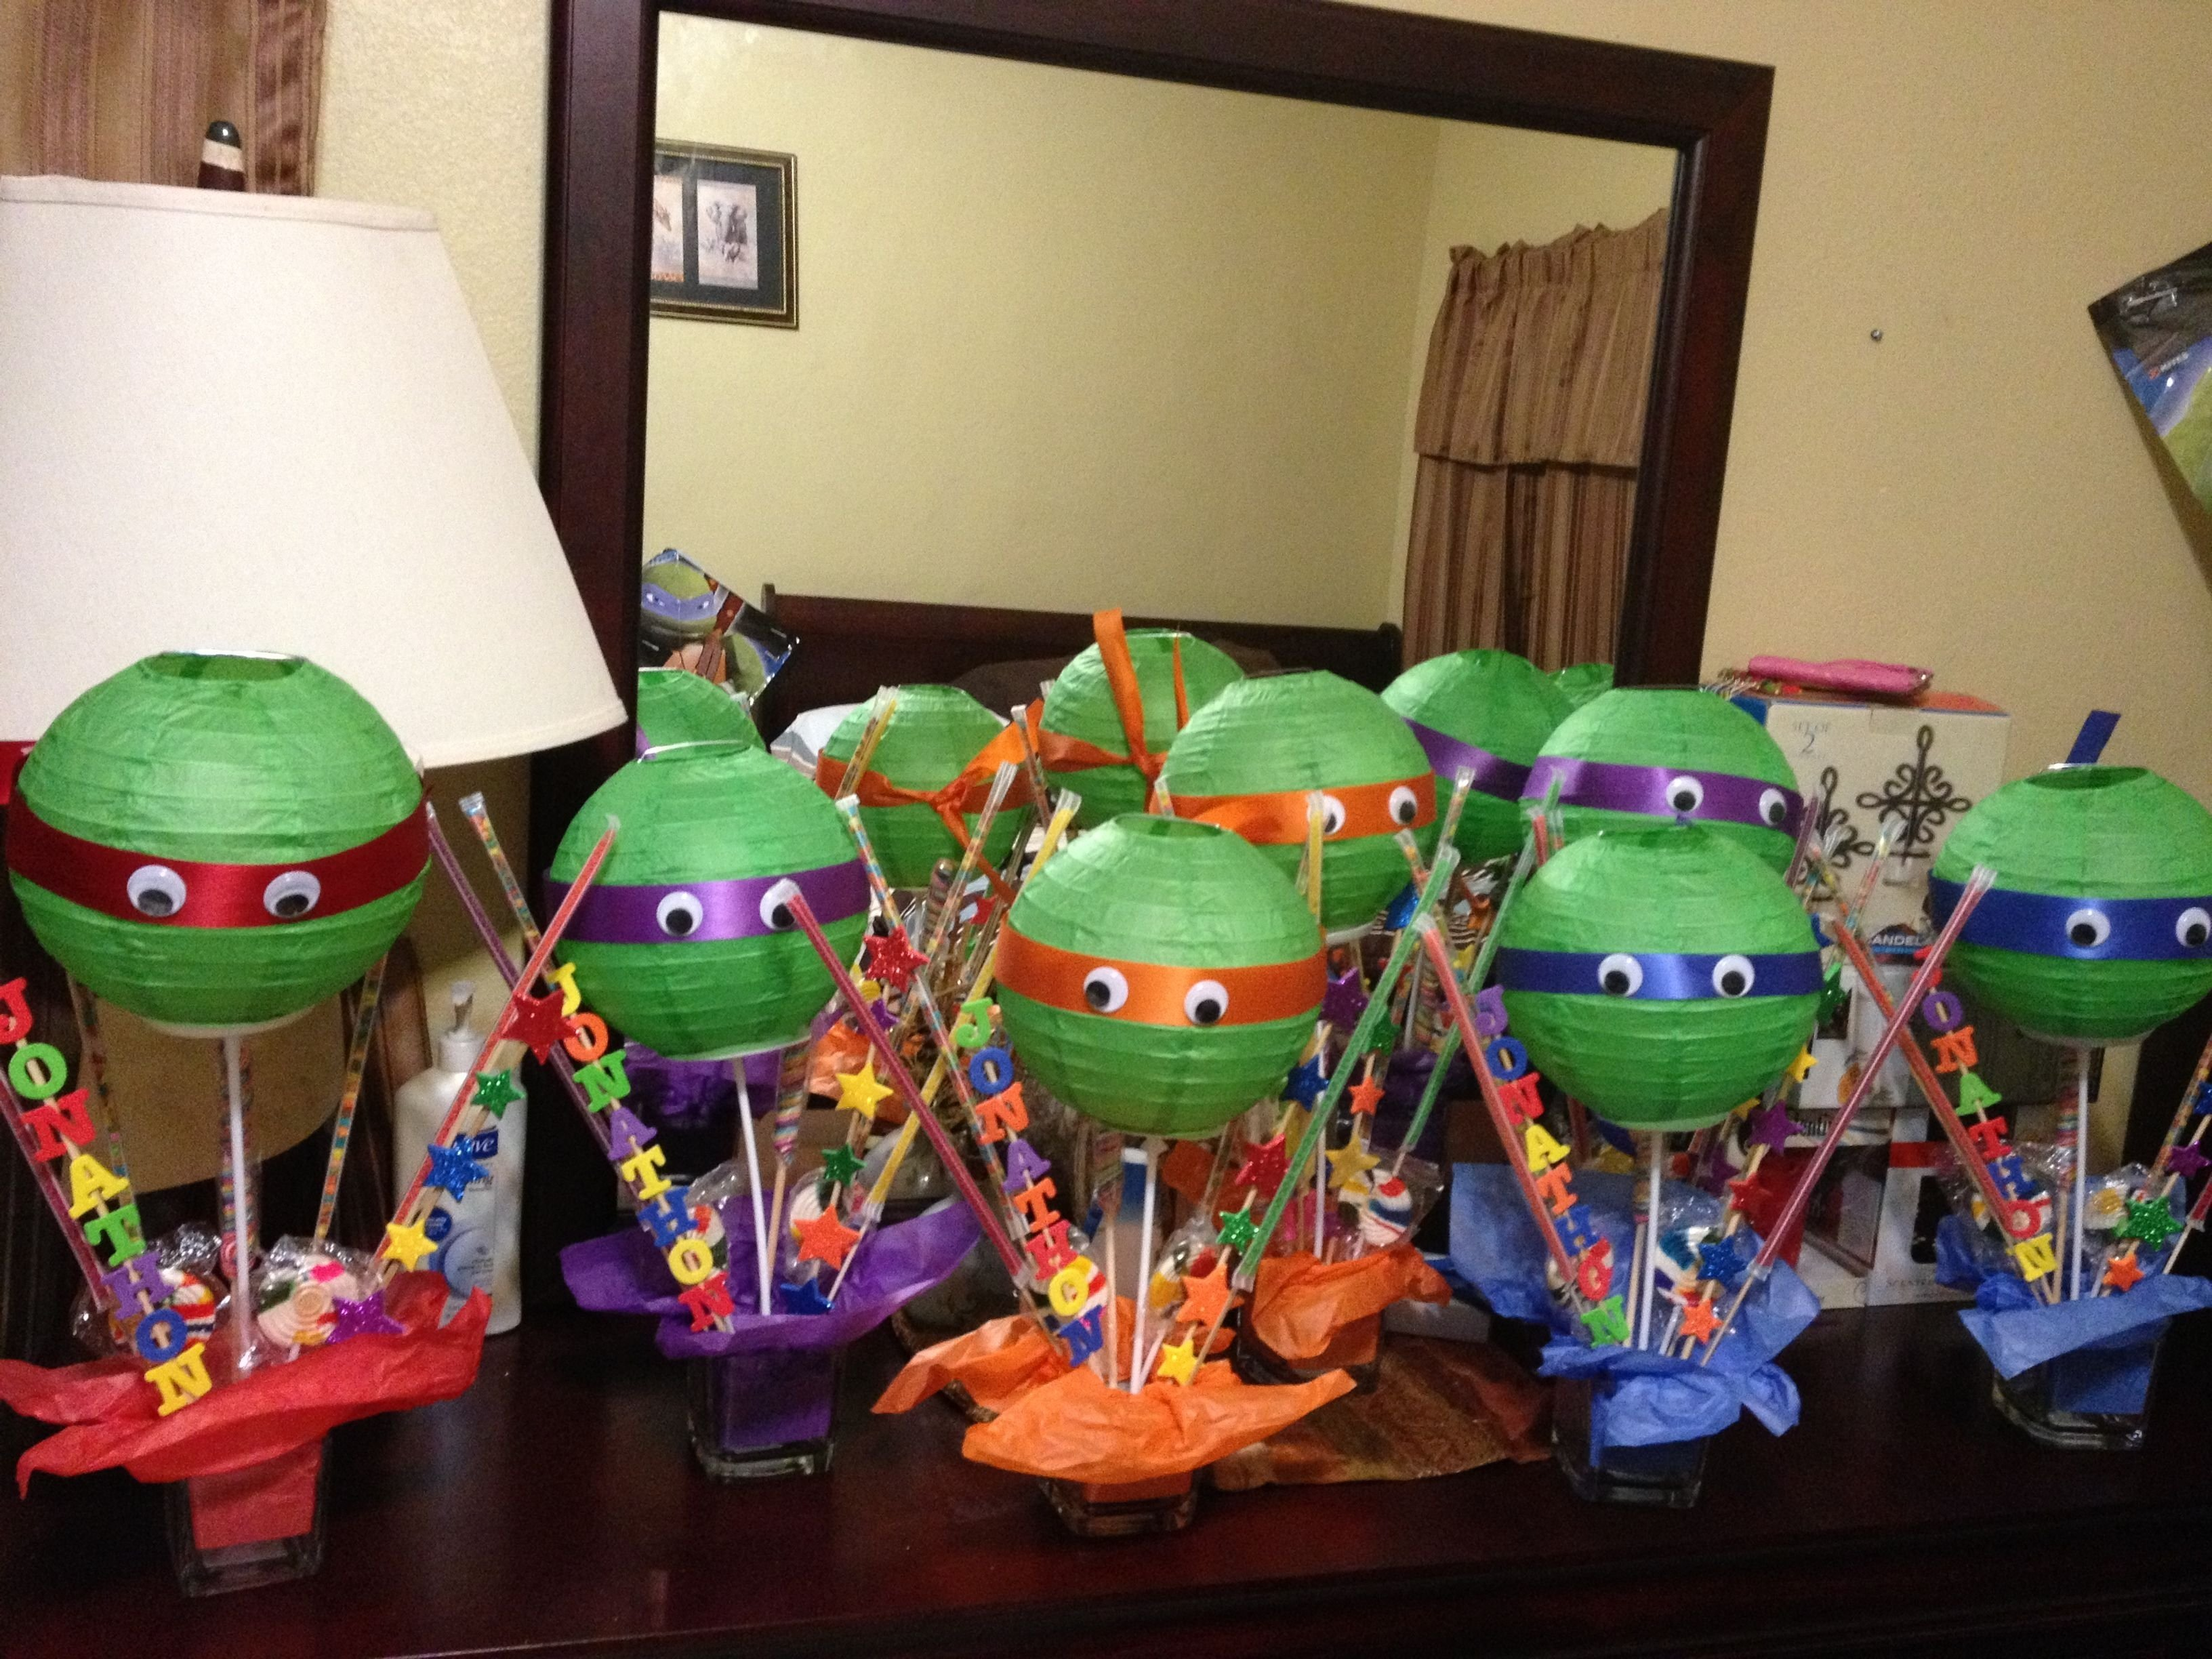 10 Awesome Teenage Mutant Ninja Turtles Party Favor Ideas diy centerpieces for ninja turtle party birthday parties